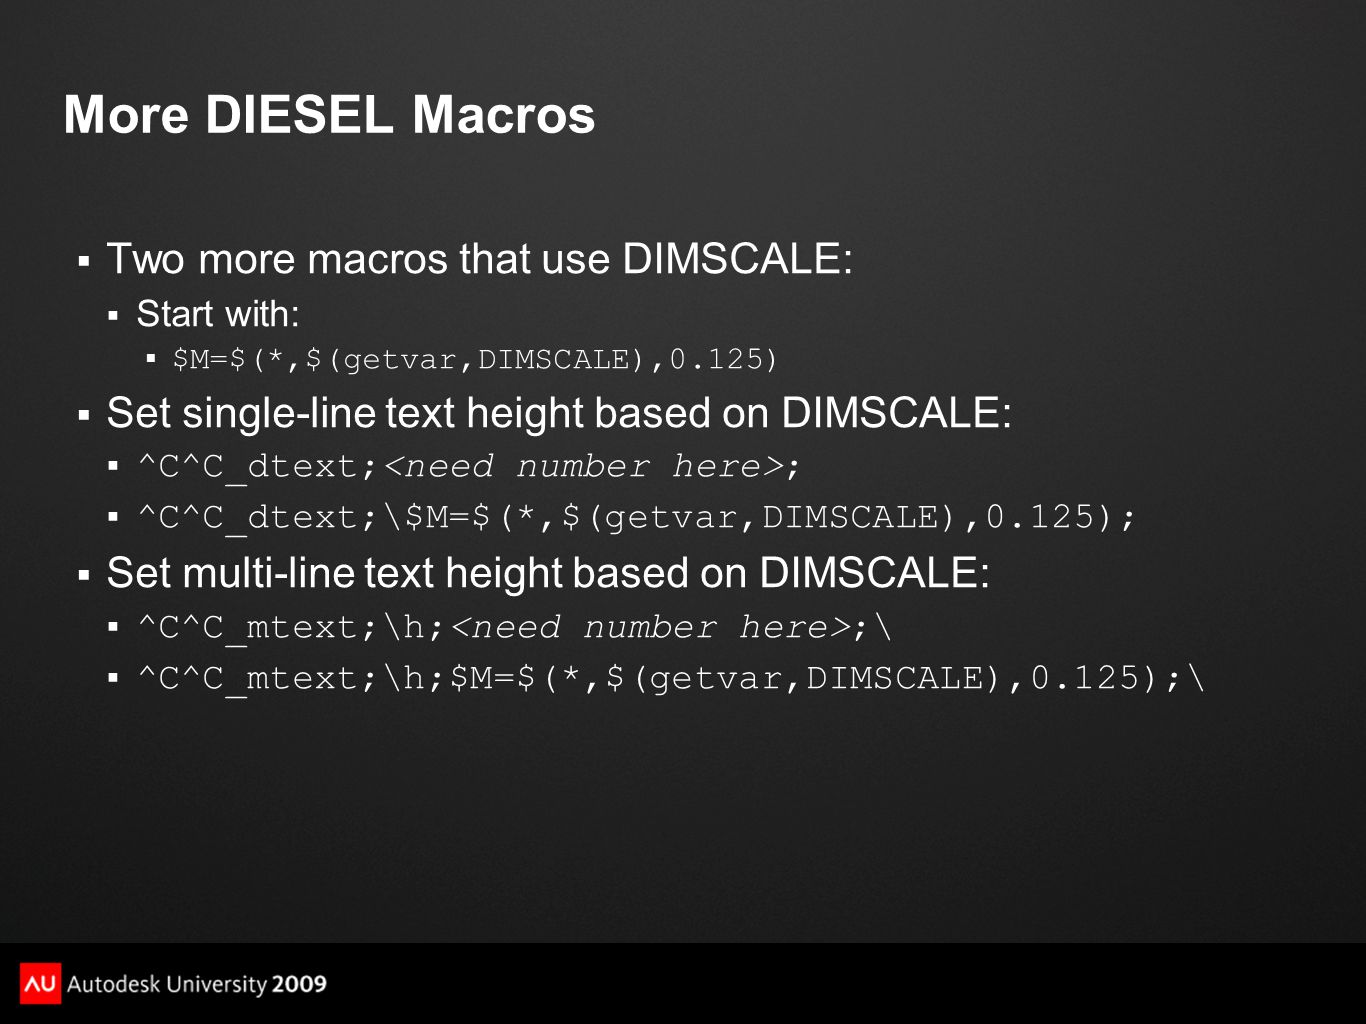 More DIESEL Macros  Two more macros that use DIMSCALE:  Start with:  $M=$(*,$(getvar,DIMSCALE),0.125)  Set single-line text height based on DIMSCA